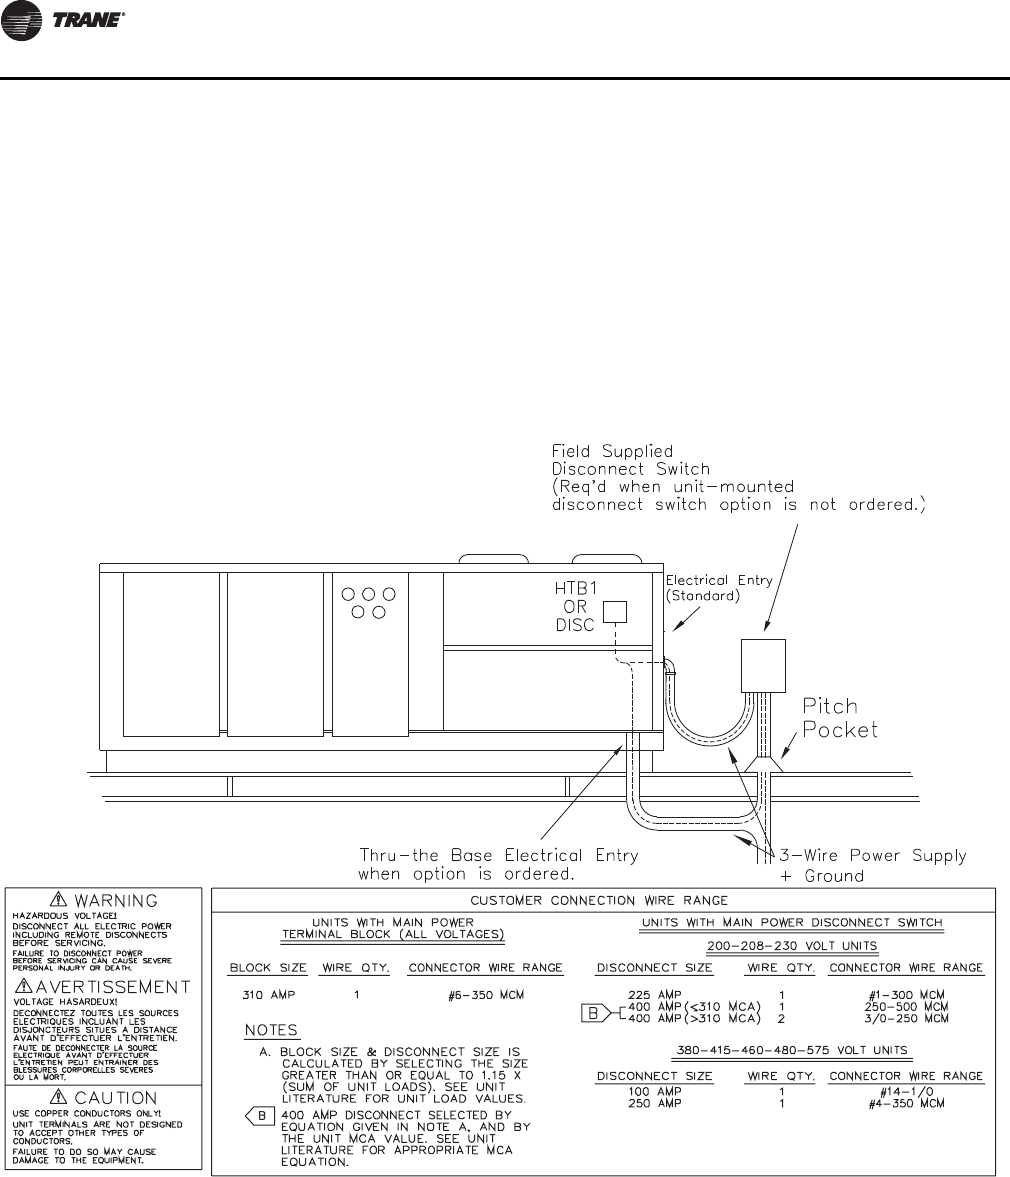 Wiring Diagram For Trane Thermostat W1 1246 Schematics Heat Pump Schematic Voyager Commercial 27 5 To 50 Tons Installation And Rh Usermanual Wiki 7 19b